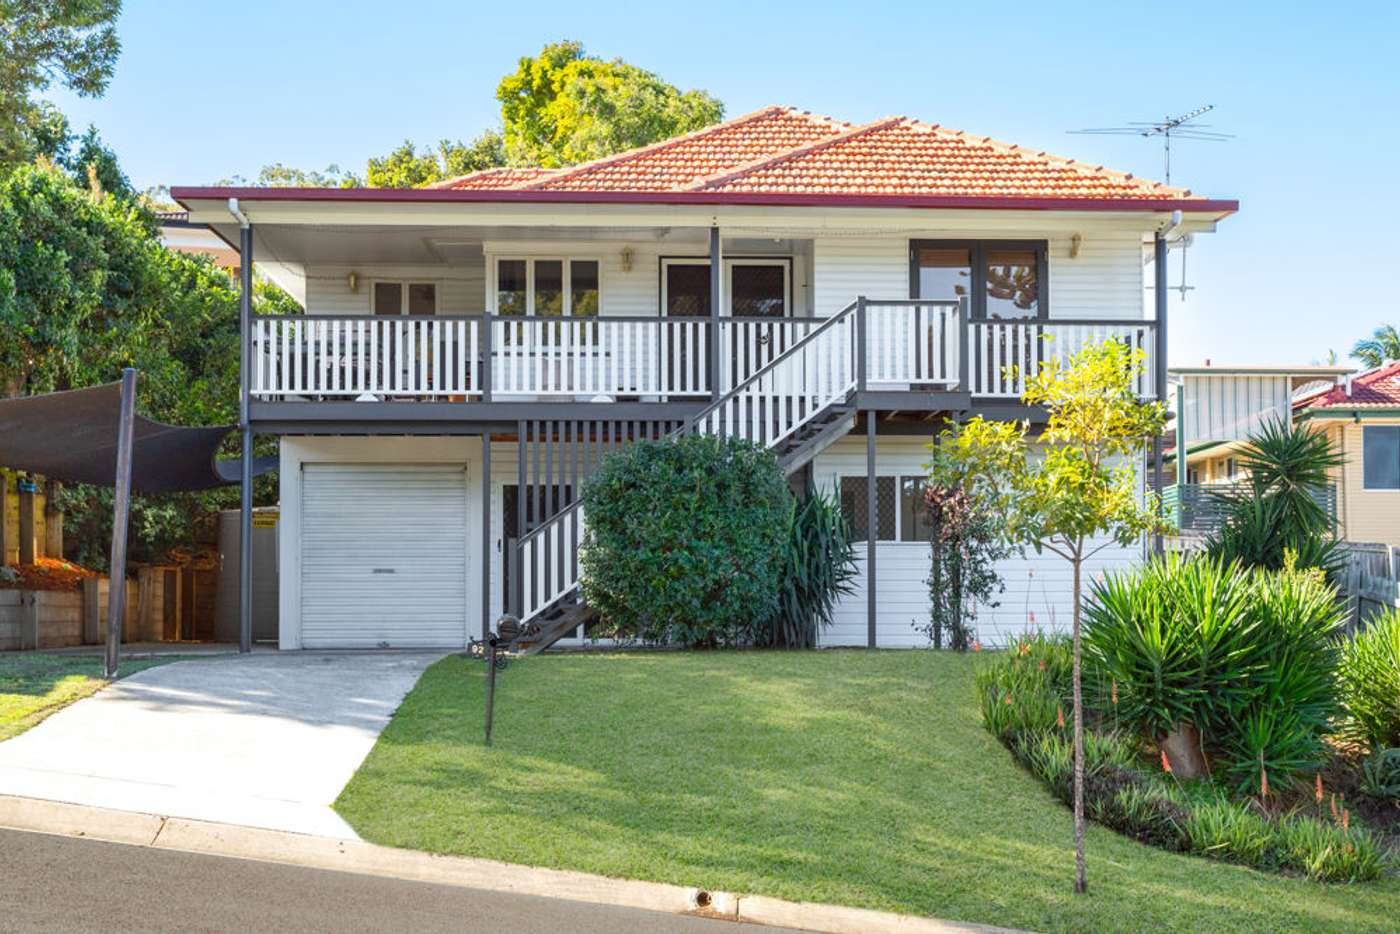 Main view of Homely house listing, 92 Constellation Way, Wynnum QLD 4178